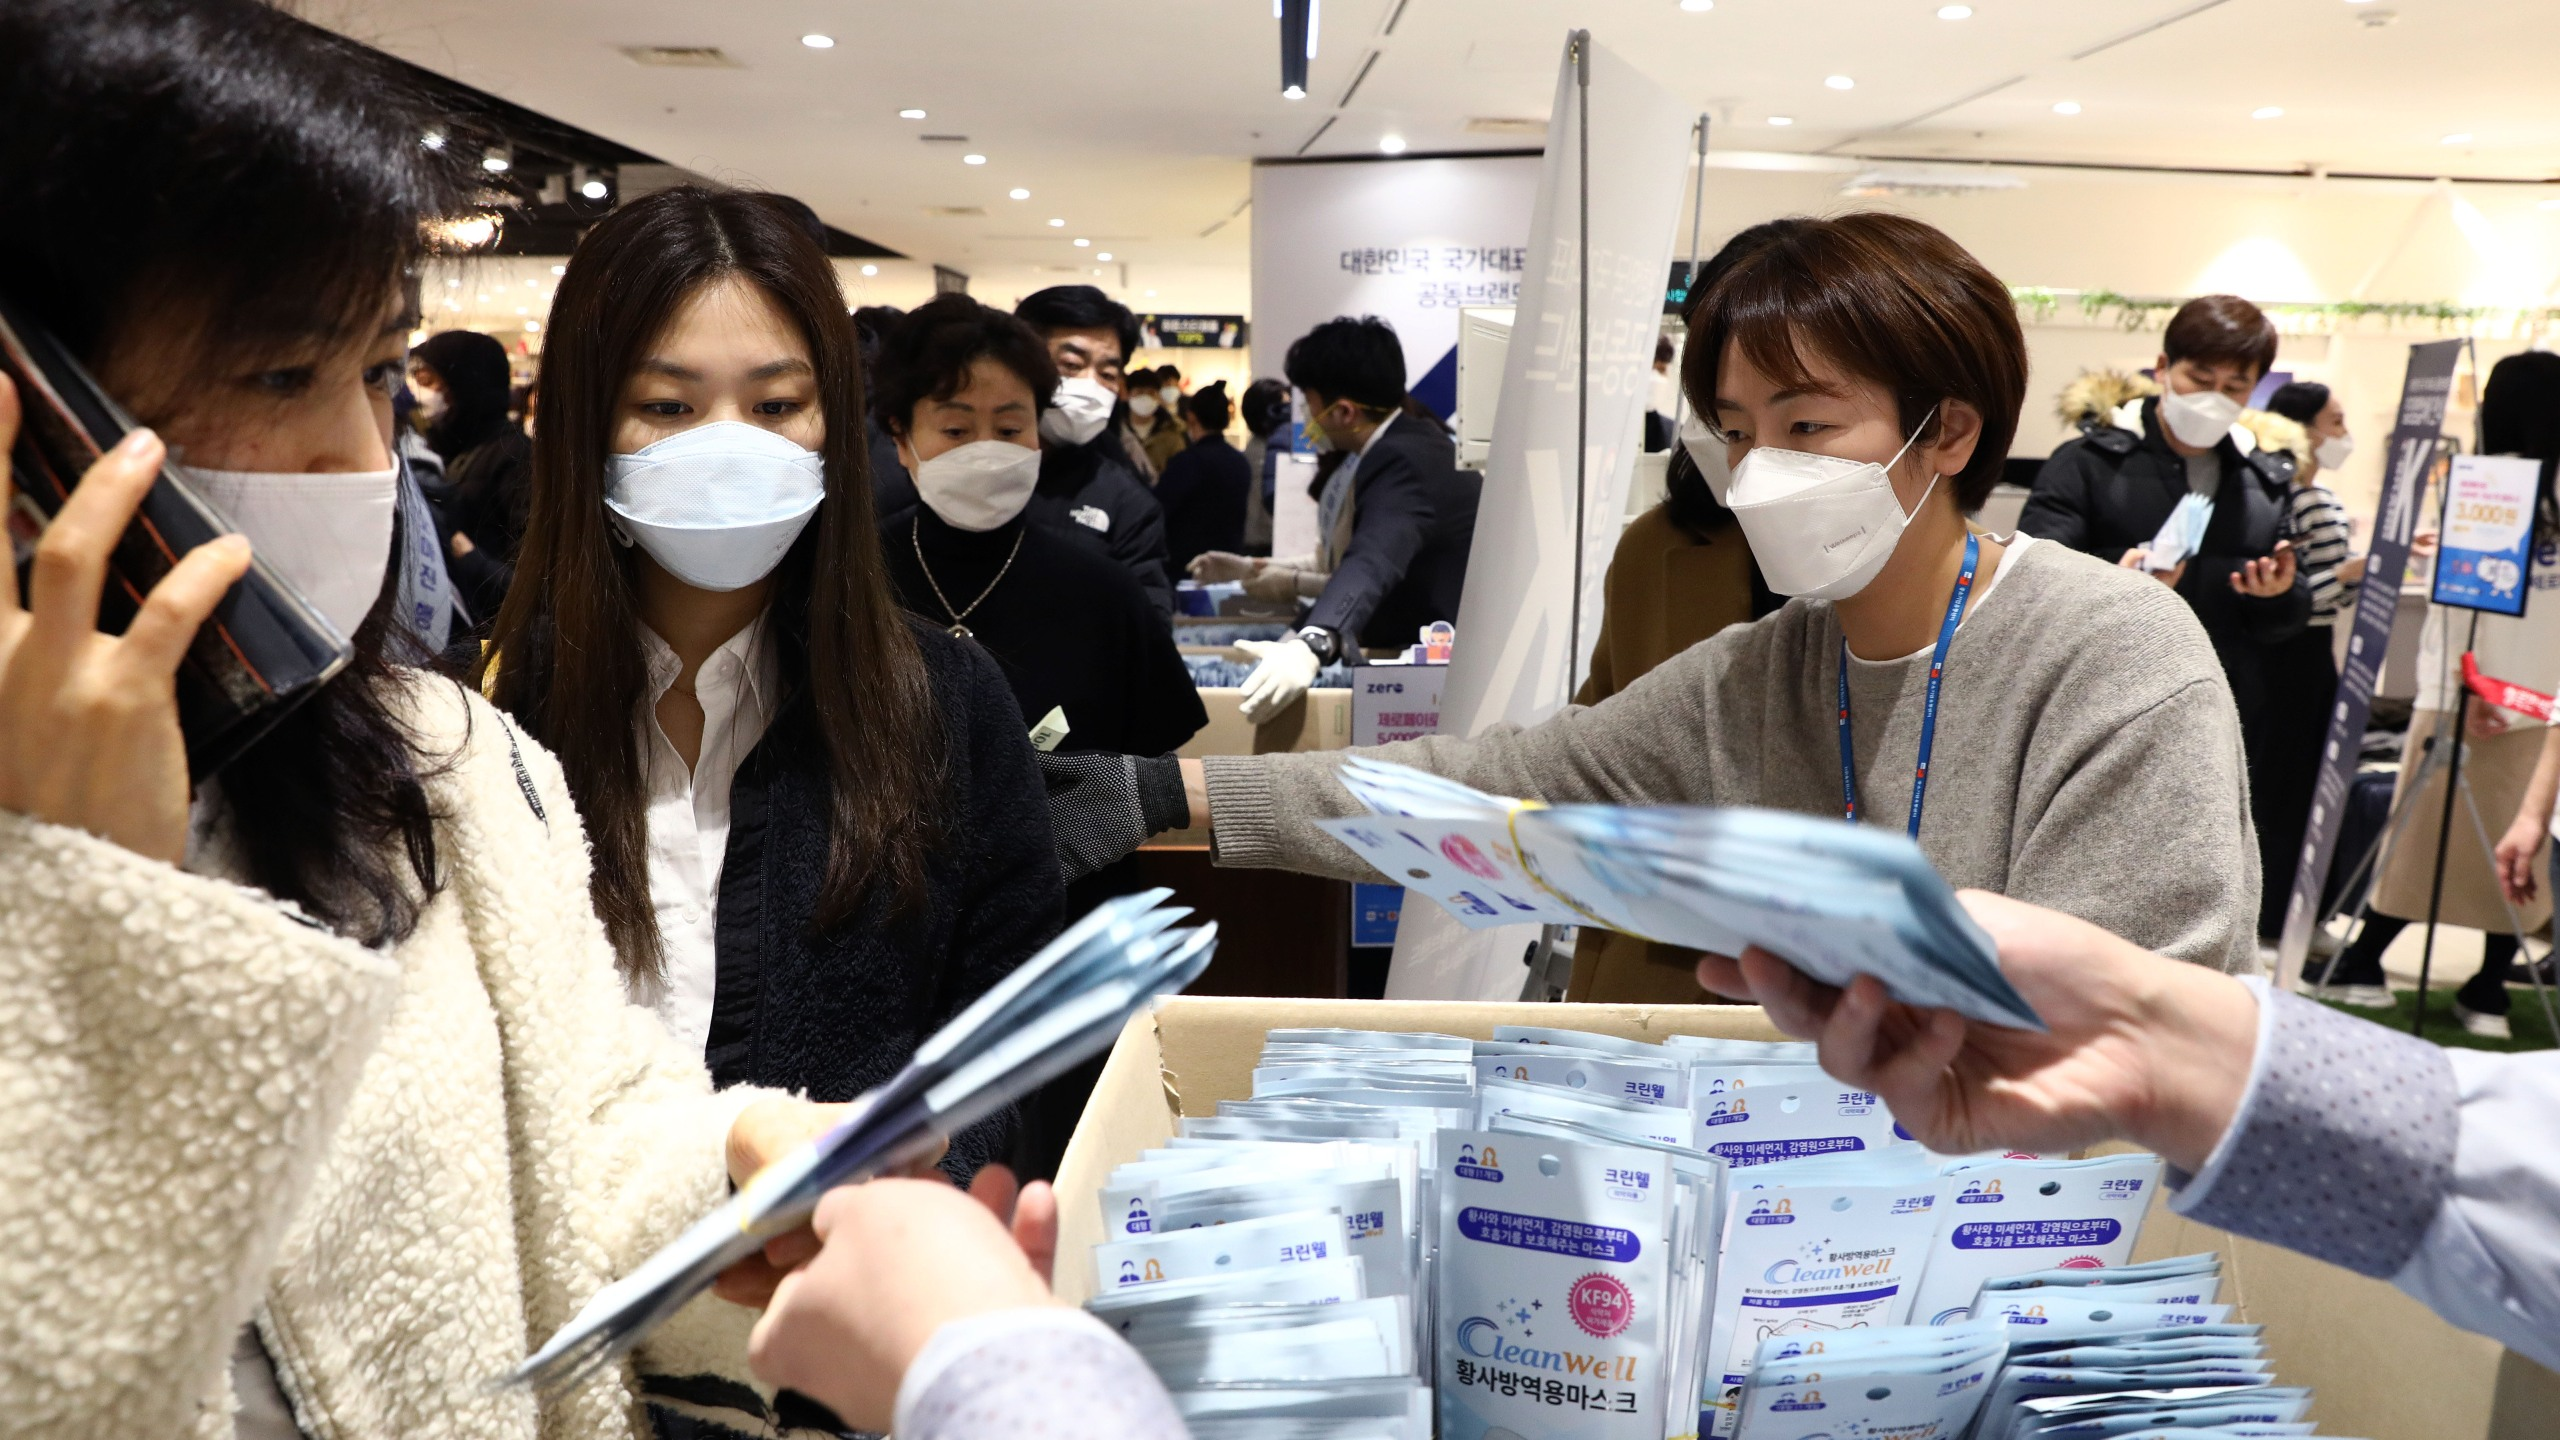 People wearing masks to prevent the coronavirus (COVID-19) buy face masks at a department store on February 28, 2020 in